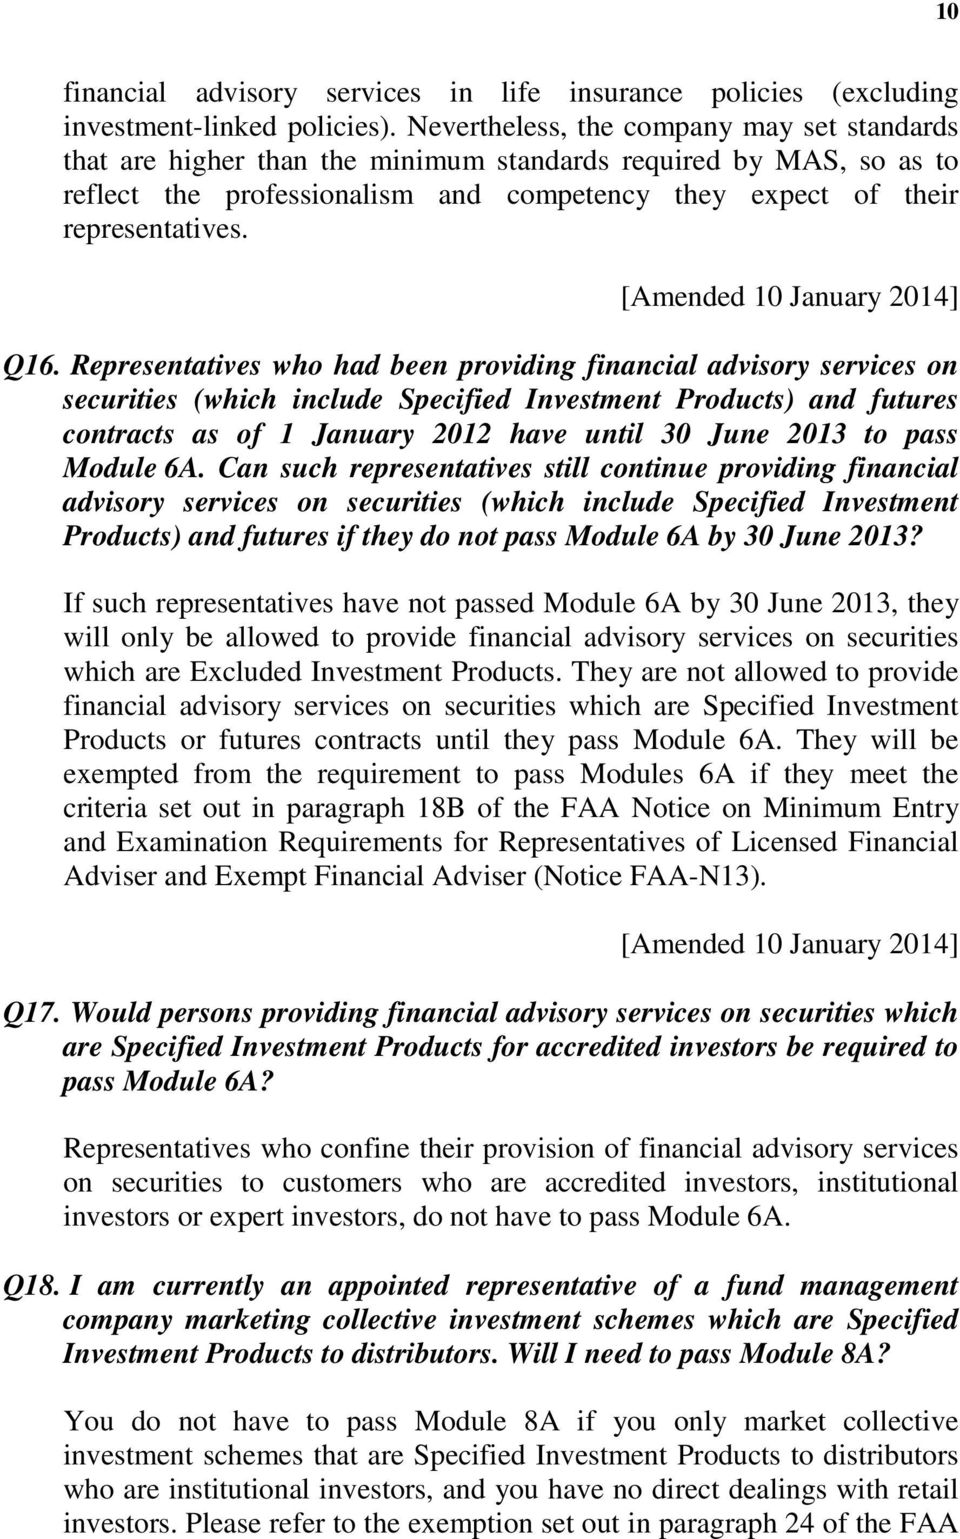 Representatives who had been providing financial advisory services on securities (which include Specified Investment Products) and futures contracts as of 1 January 2012 have until 30 June 2013 to